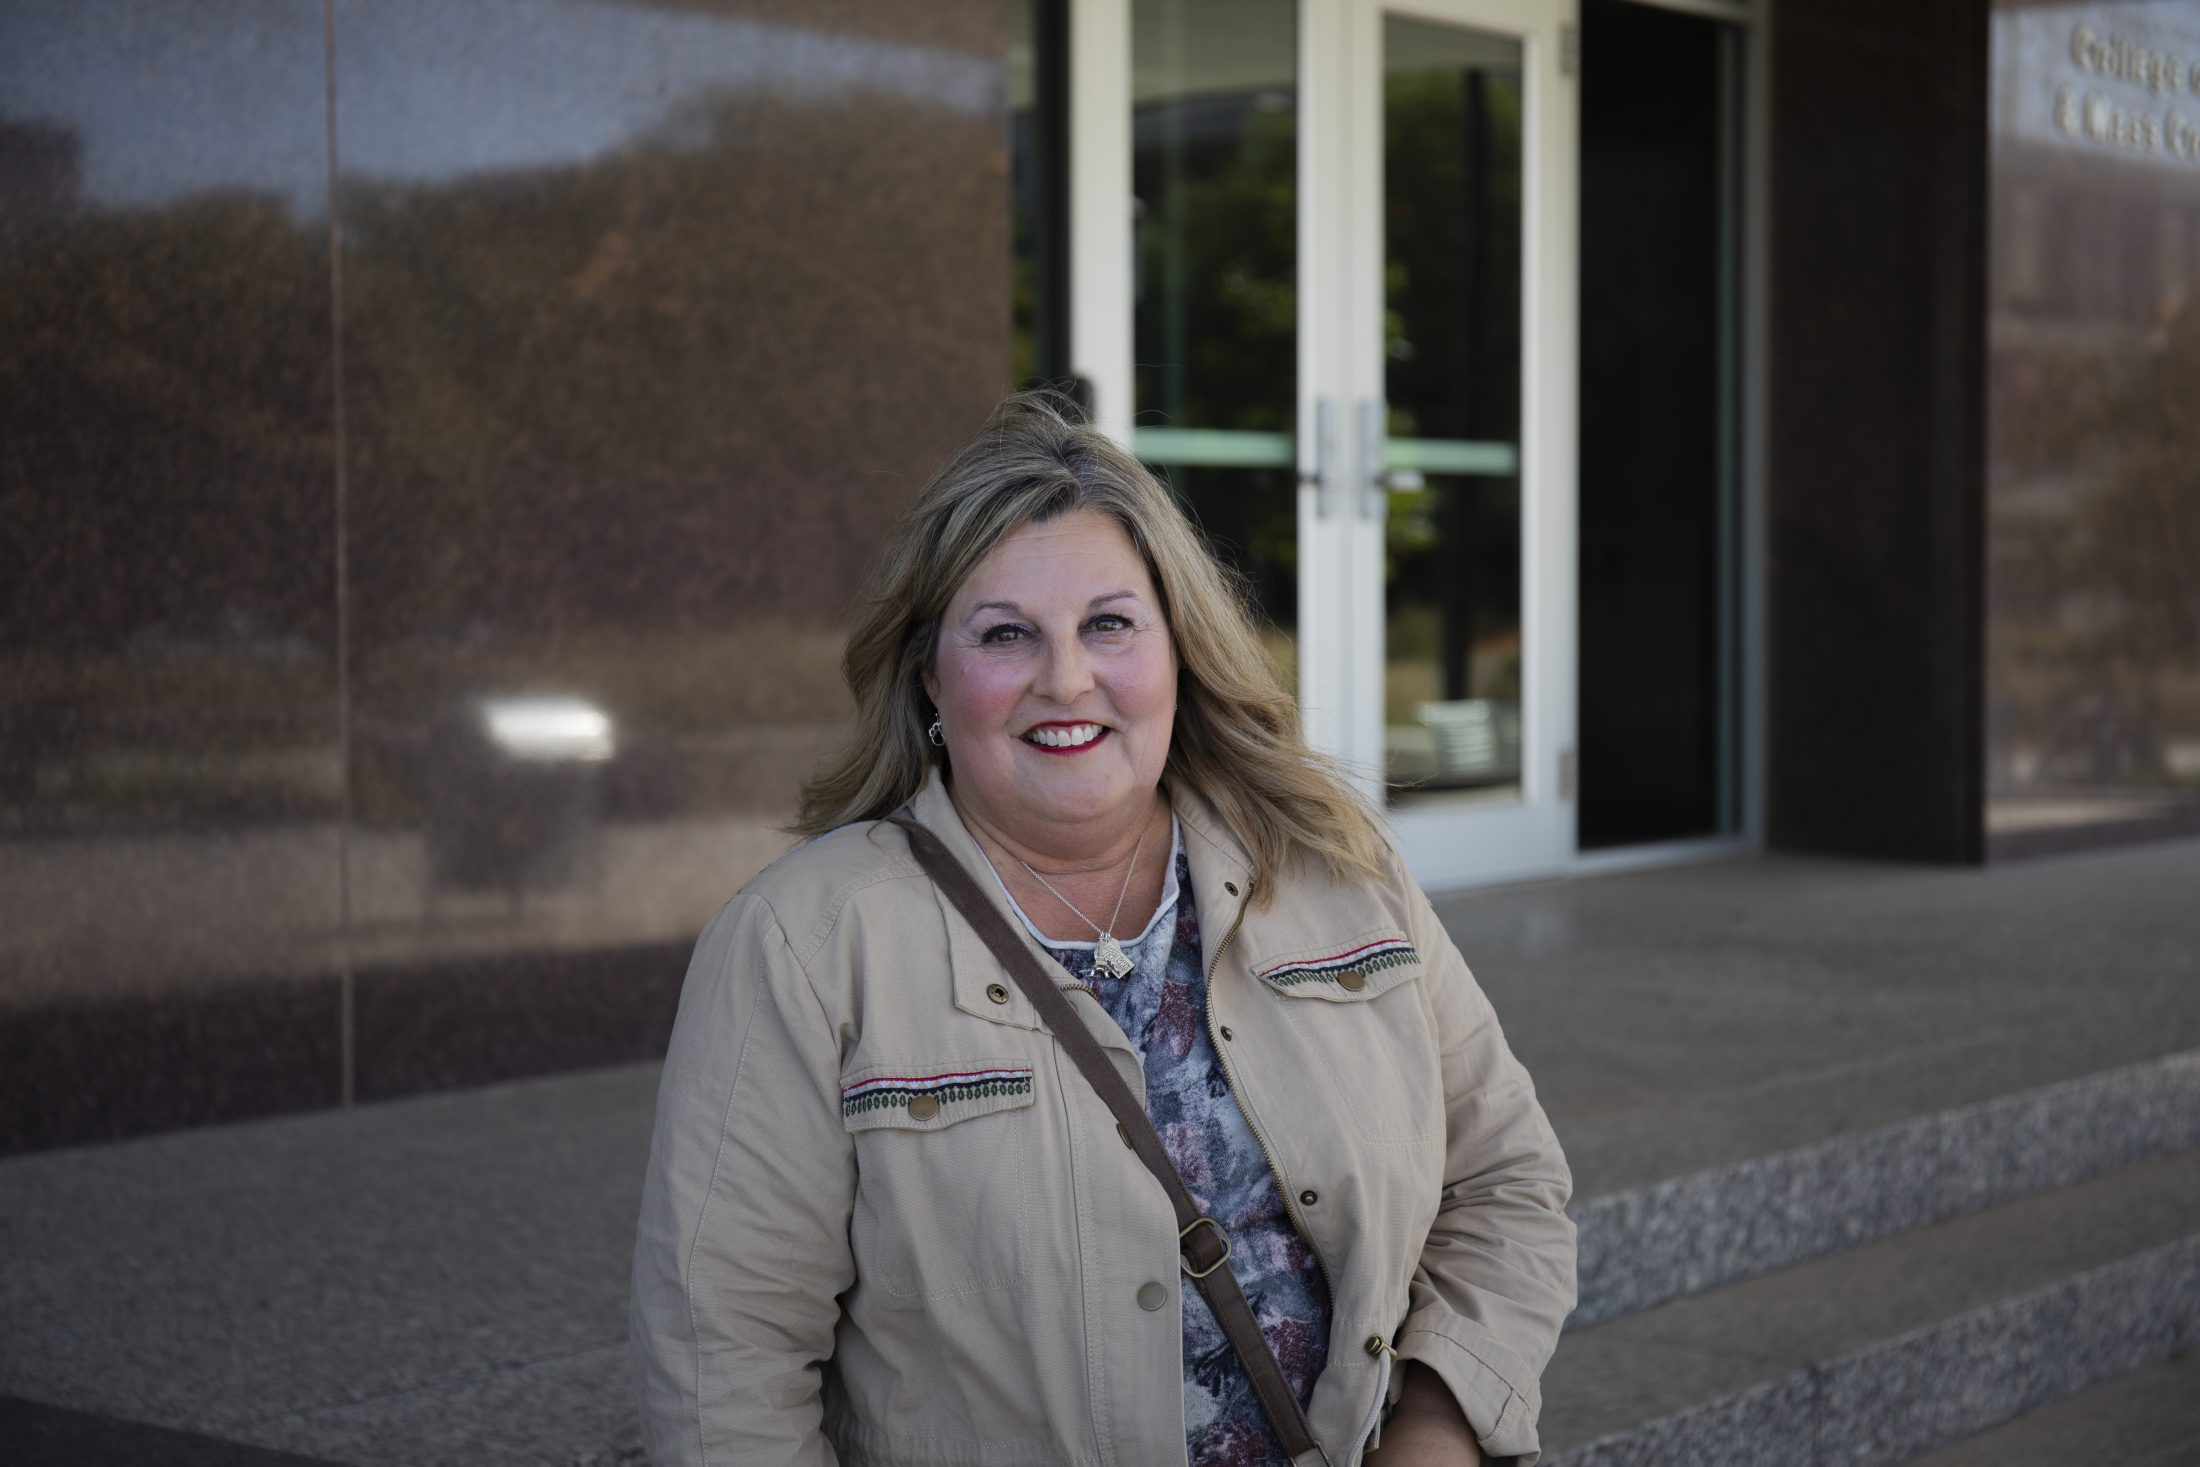 Sharon Robino-West, a United States Marine Corps veteran who served from 1980-84, poses for a portrait outside Andersen Hall on Saturday, Oct. 5, 2019, in Lincoln, Nebraska.